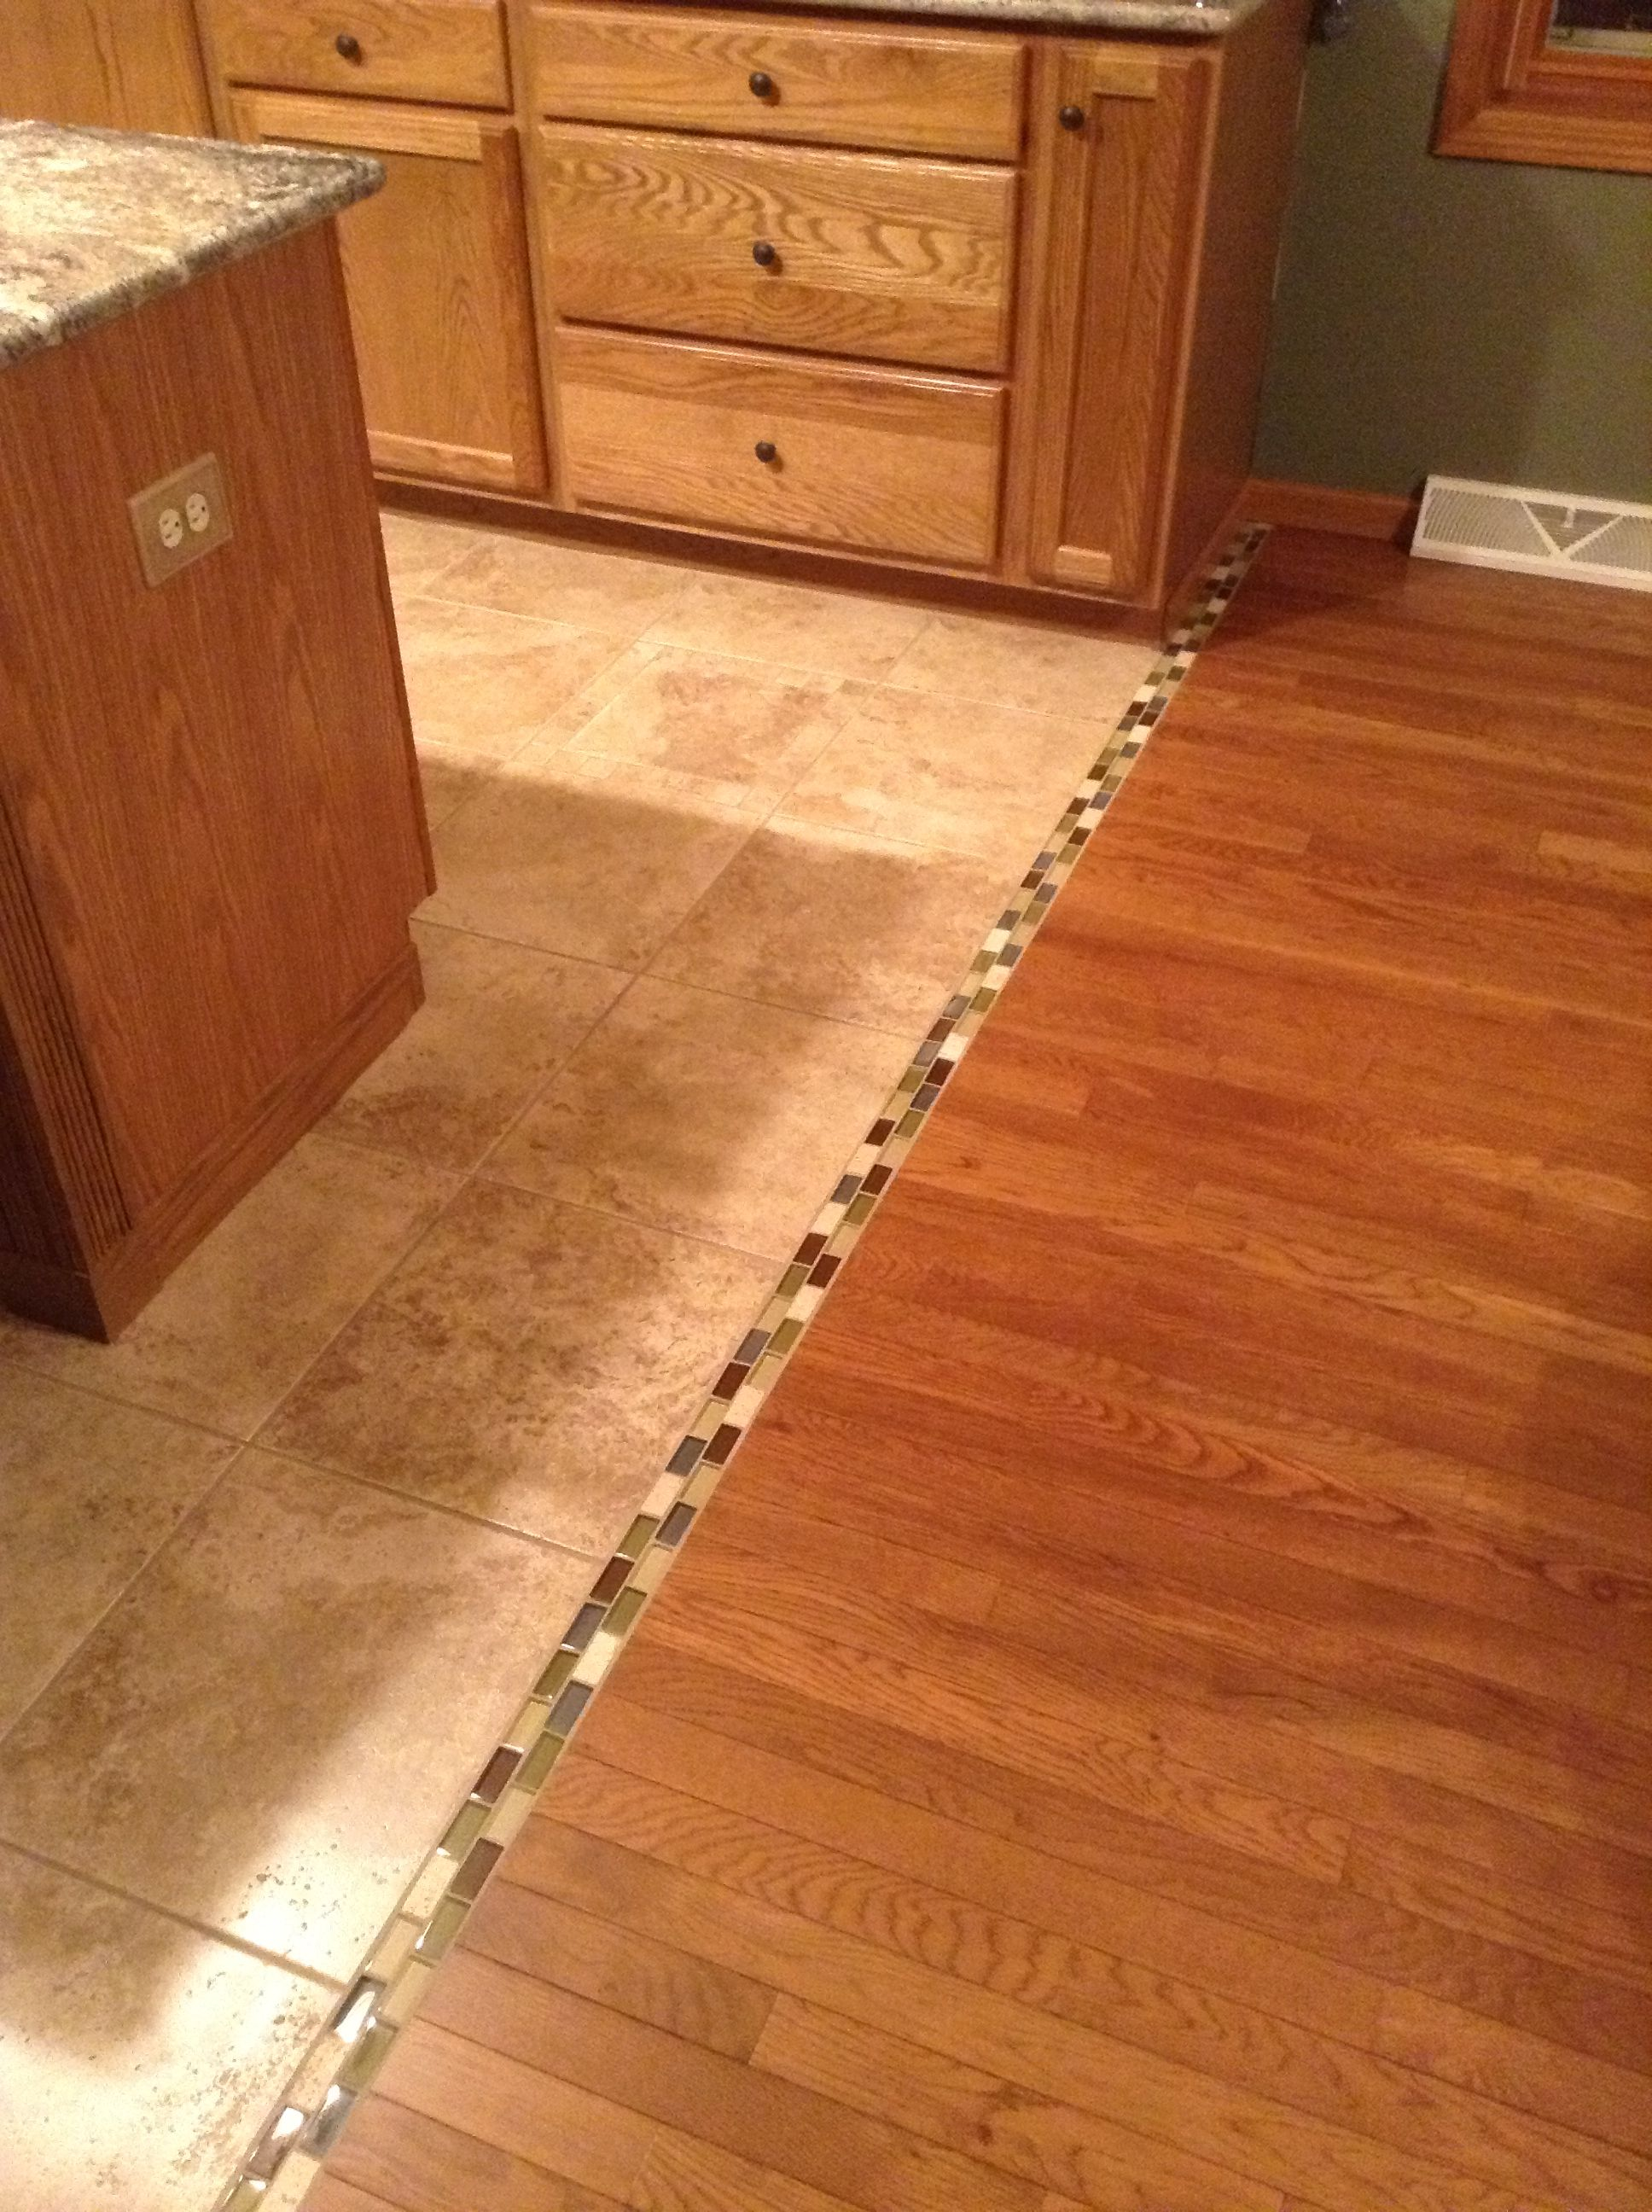 Transition Between Hardwood And Tile Floor We Should Do This Sooooo Much